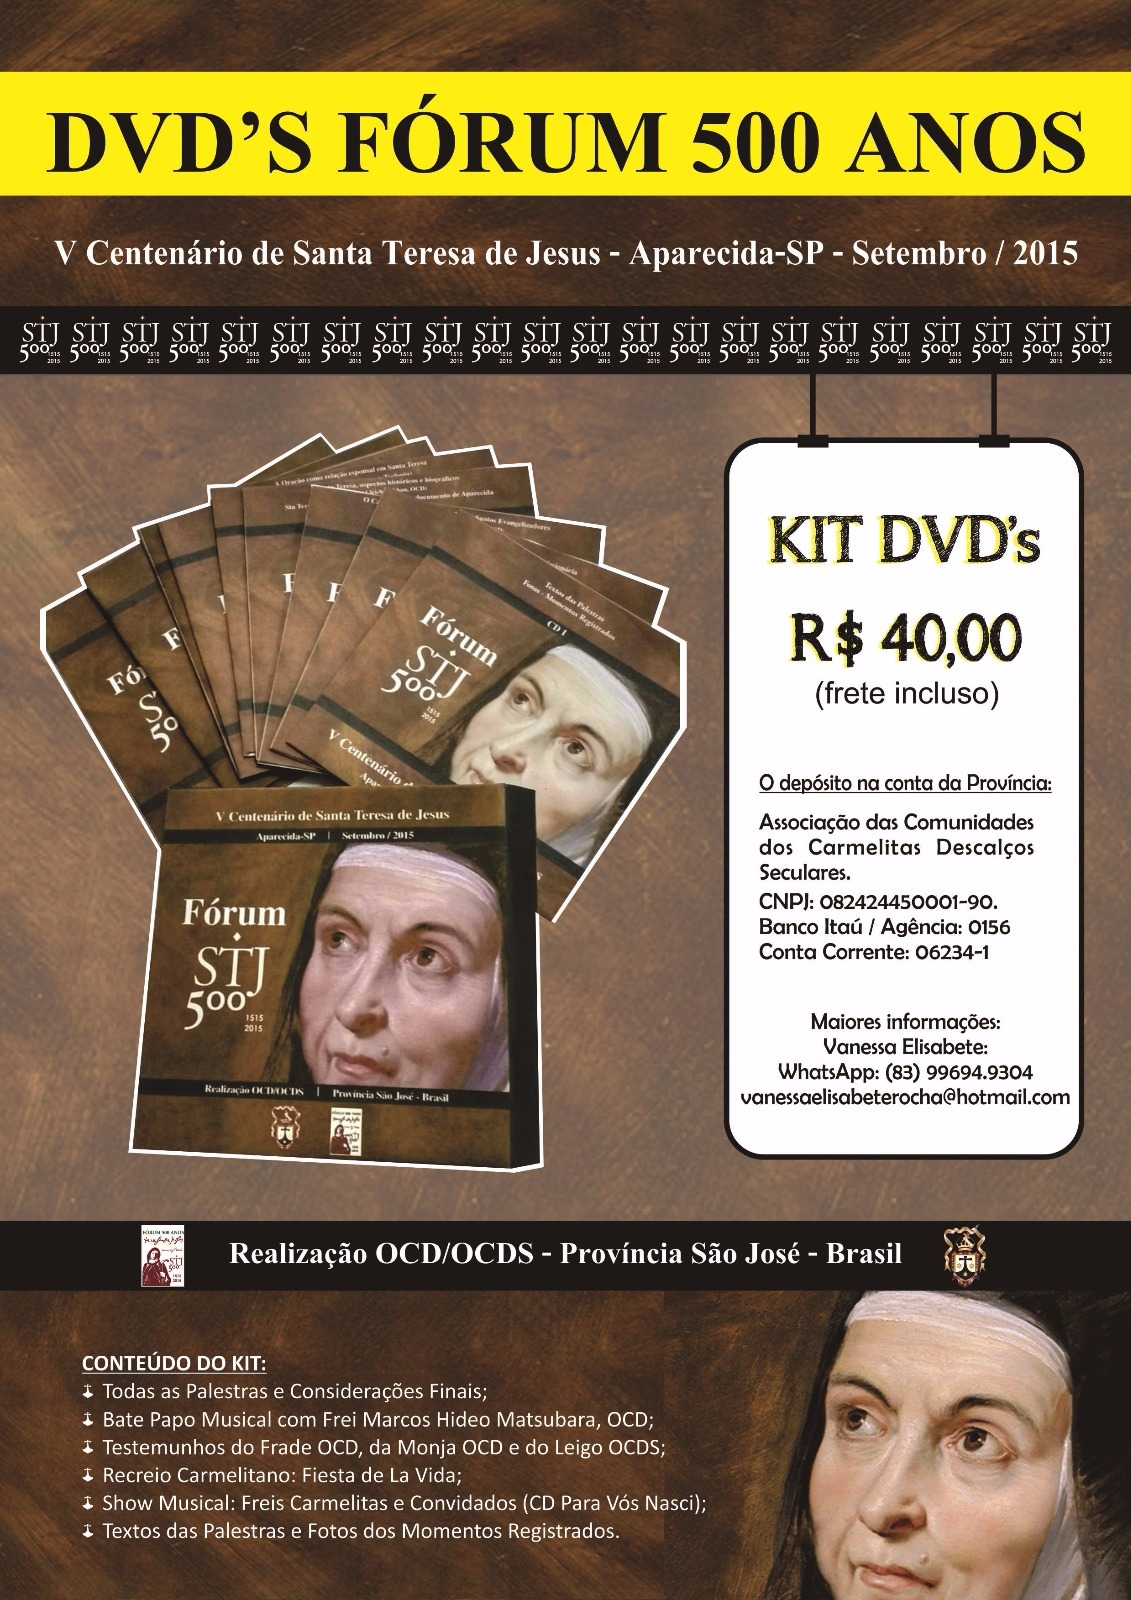 Adquira os kits com os Dvds do Fórum